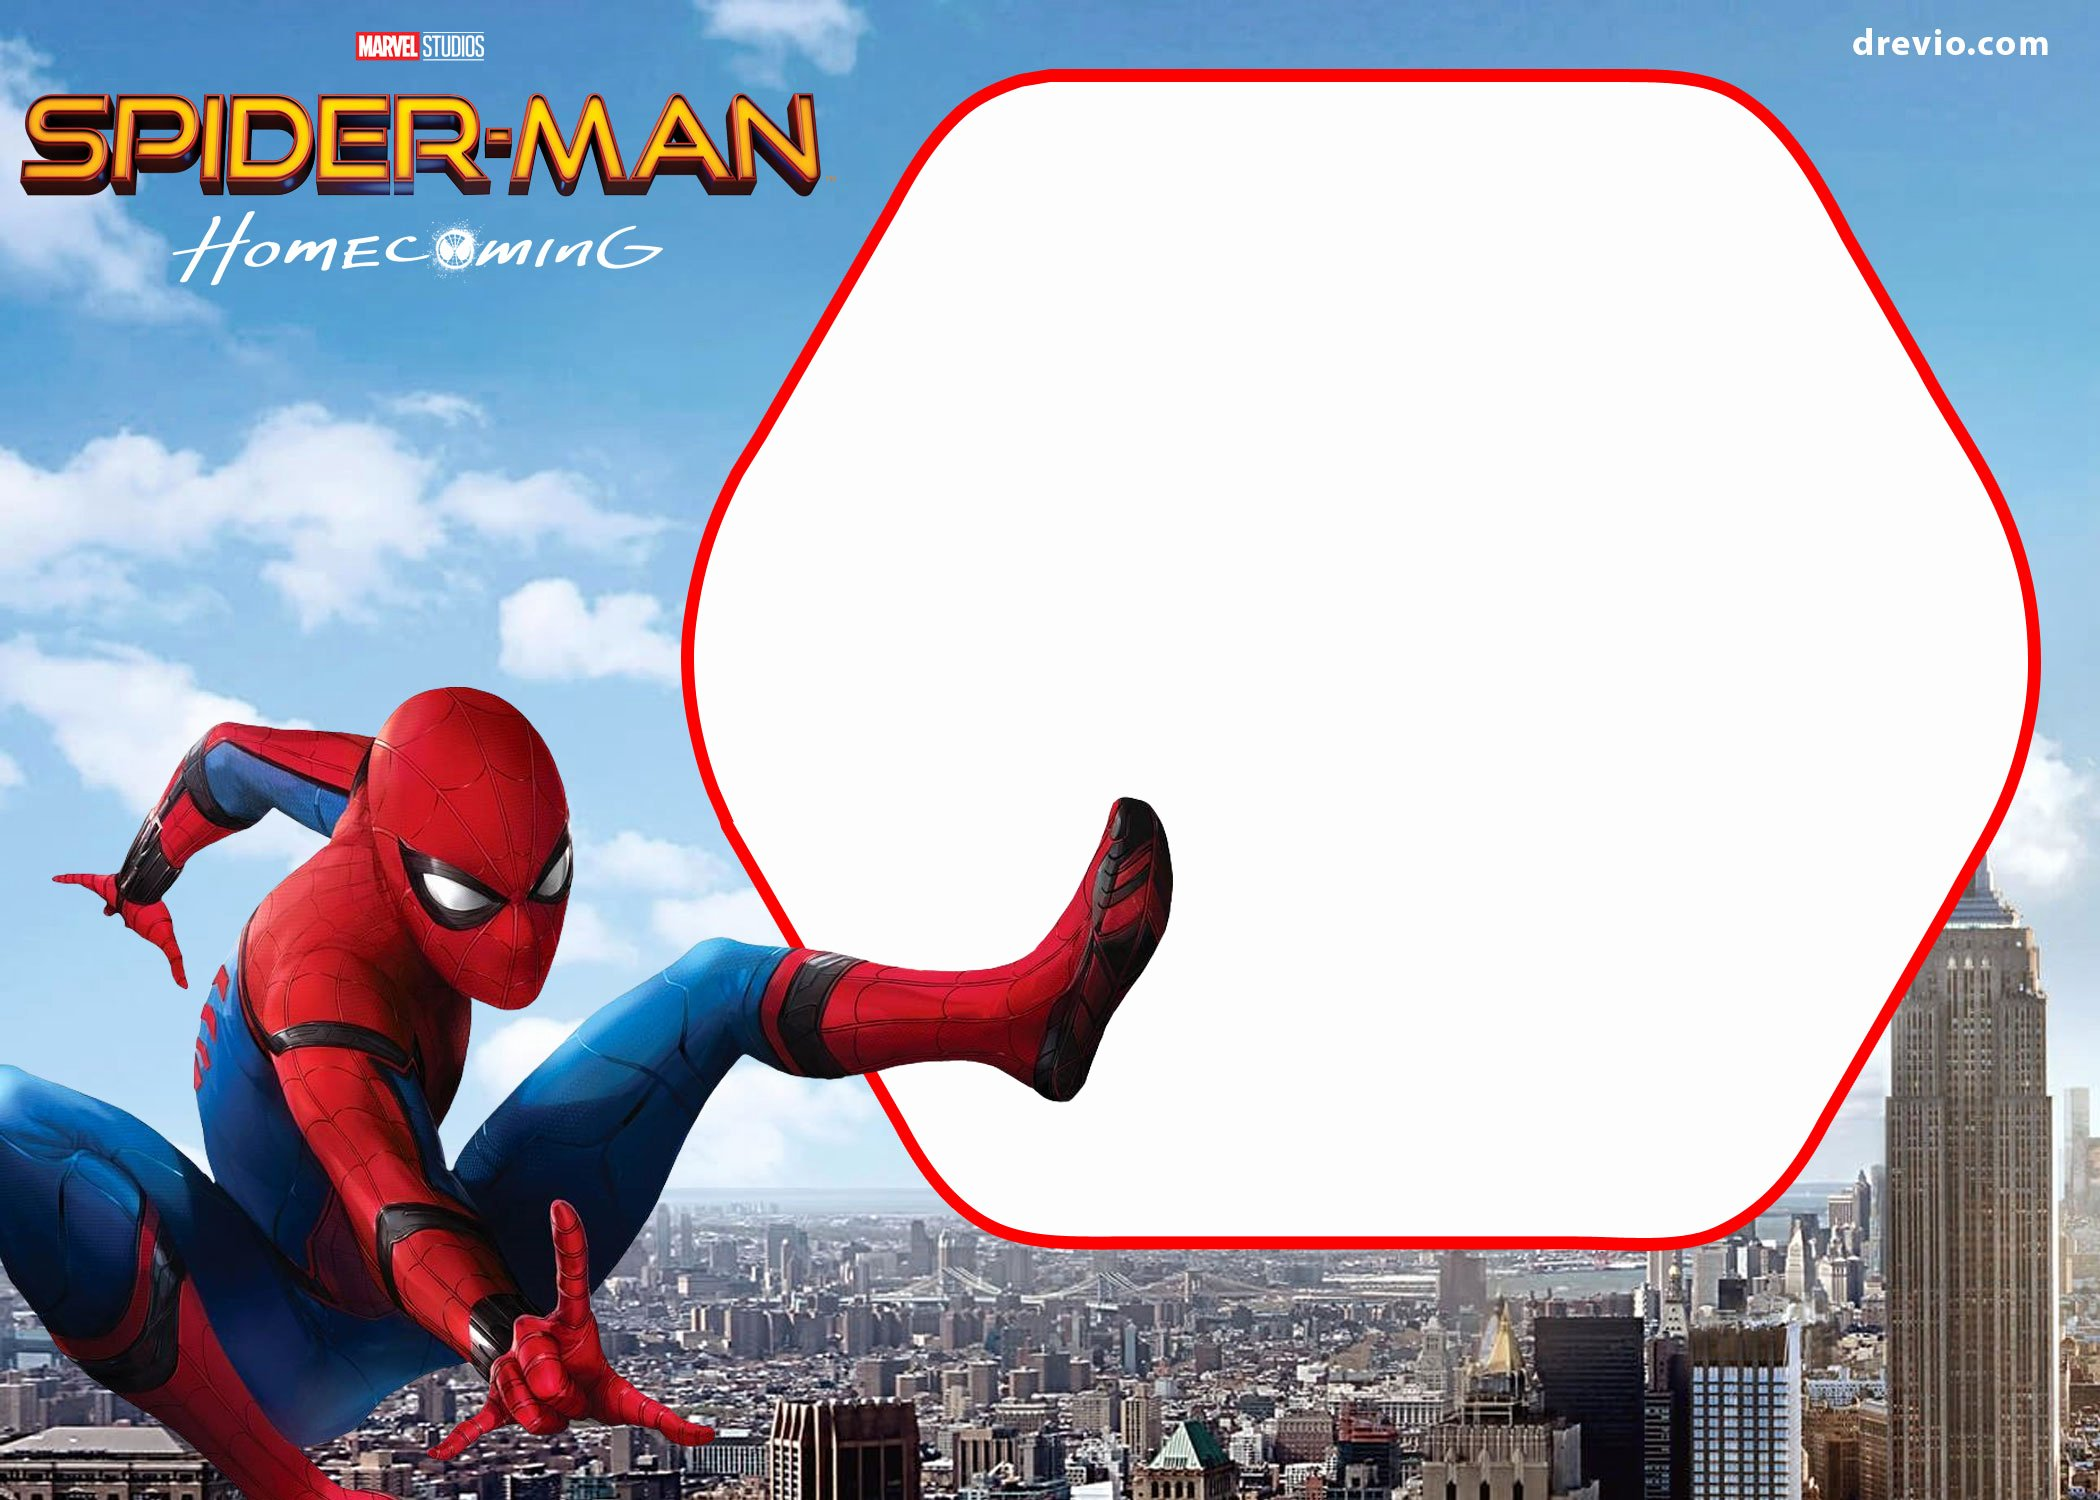 Spiderman Birthday Invitation Template Awesome Free Spiderman Home Ing Invitation Template